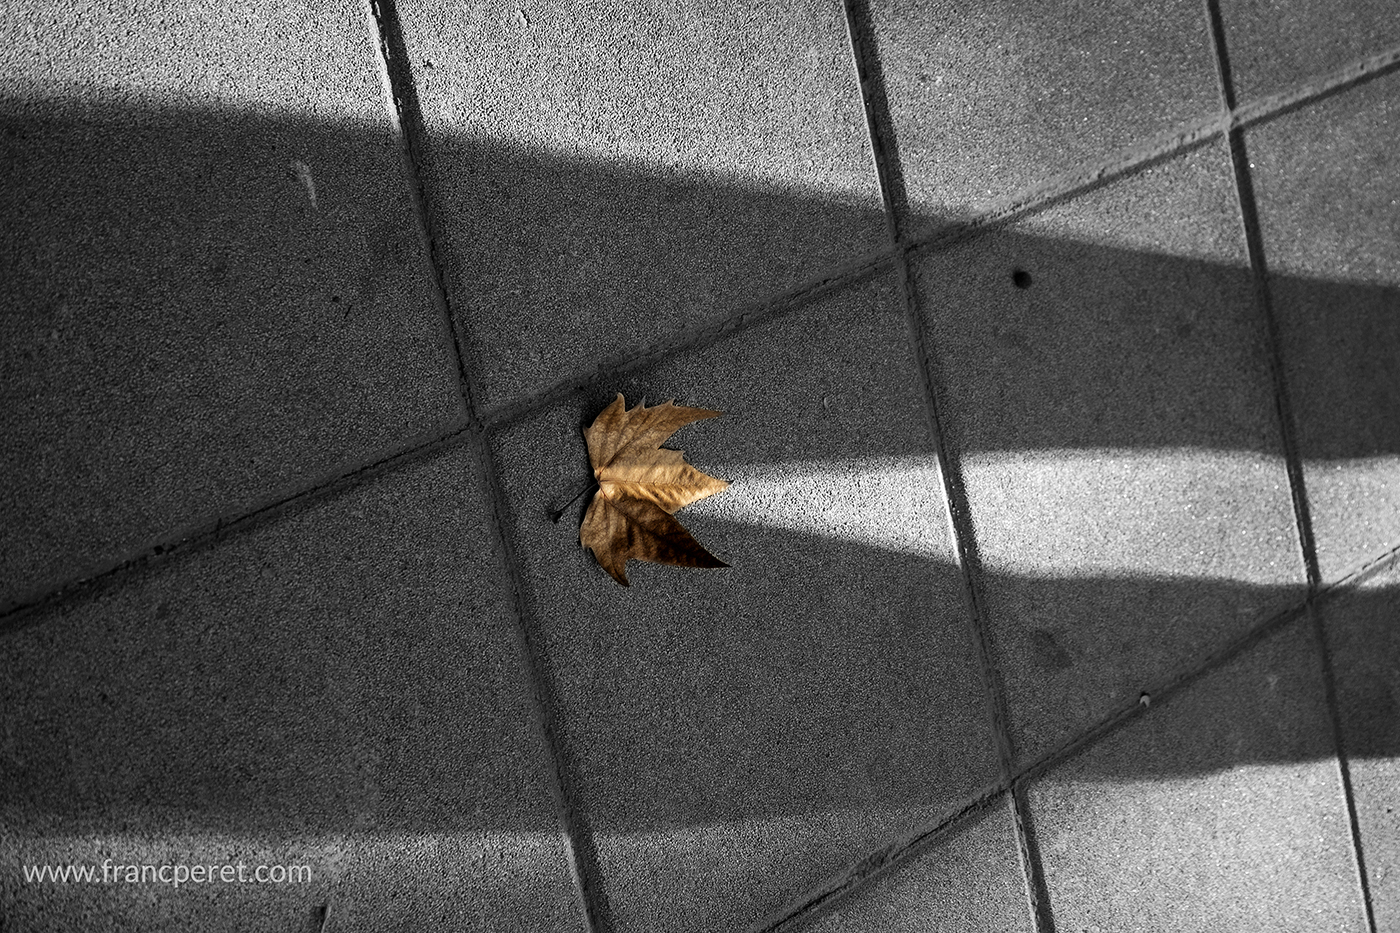 One of my student standing there, his shadow reaching a leave and the magic just happened.